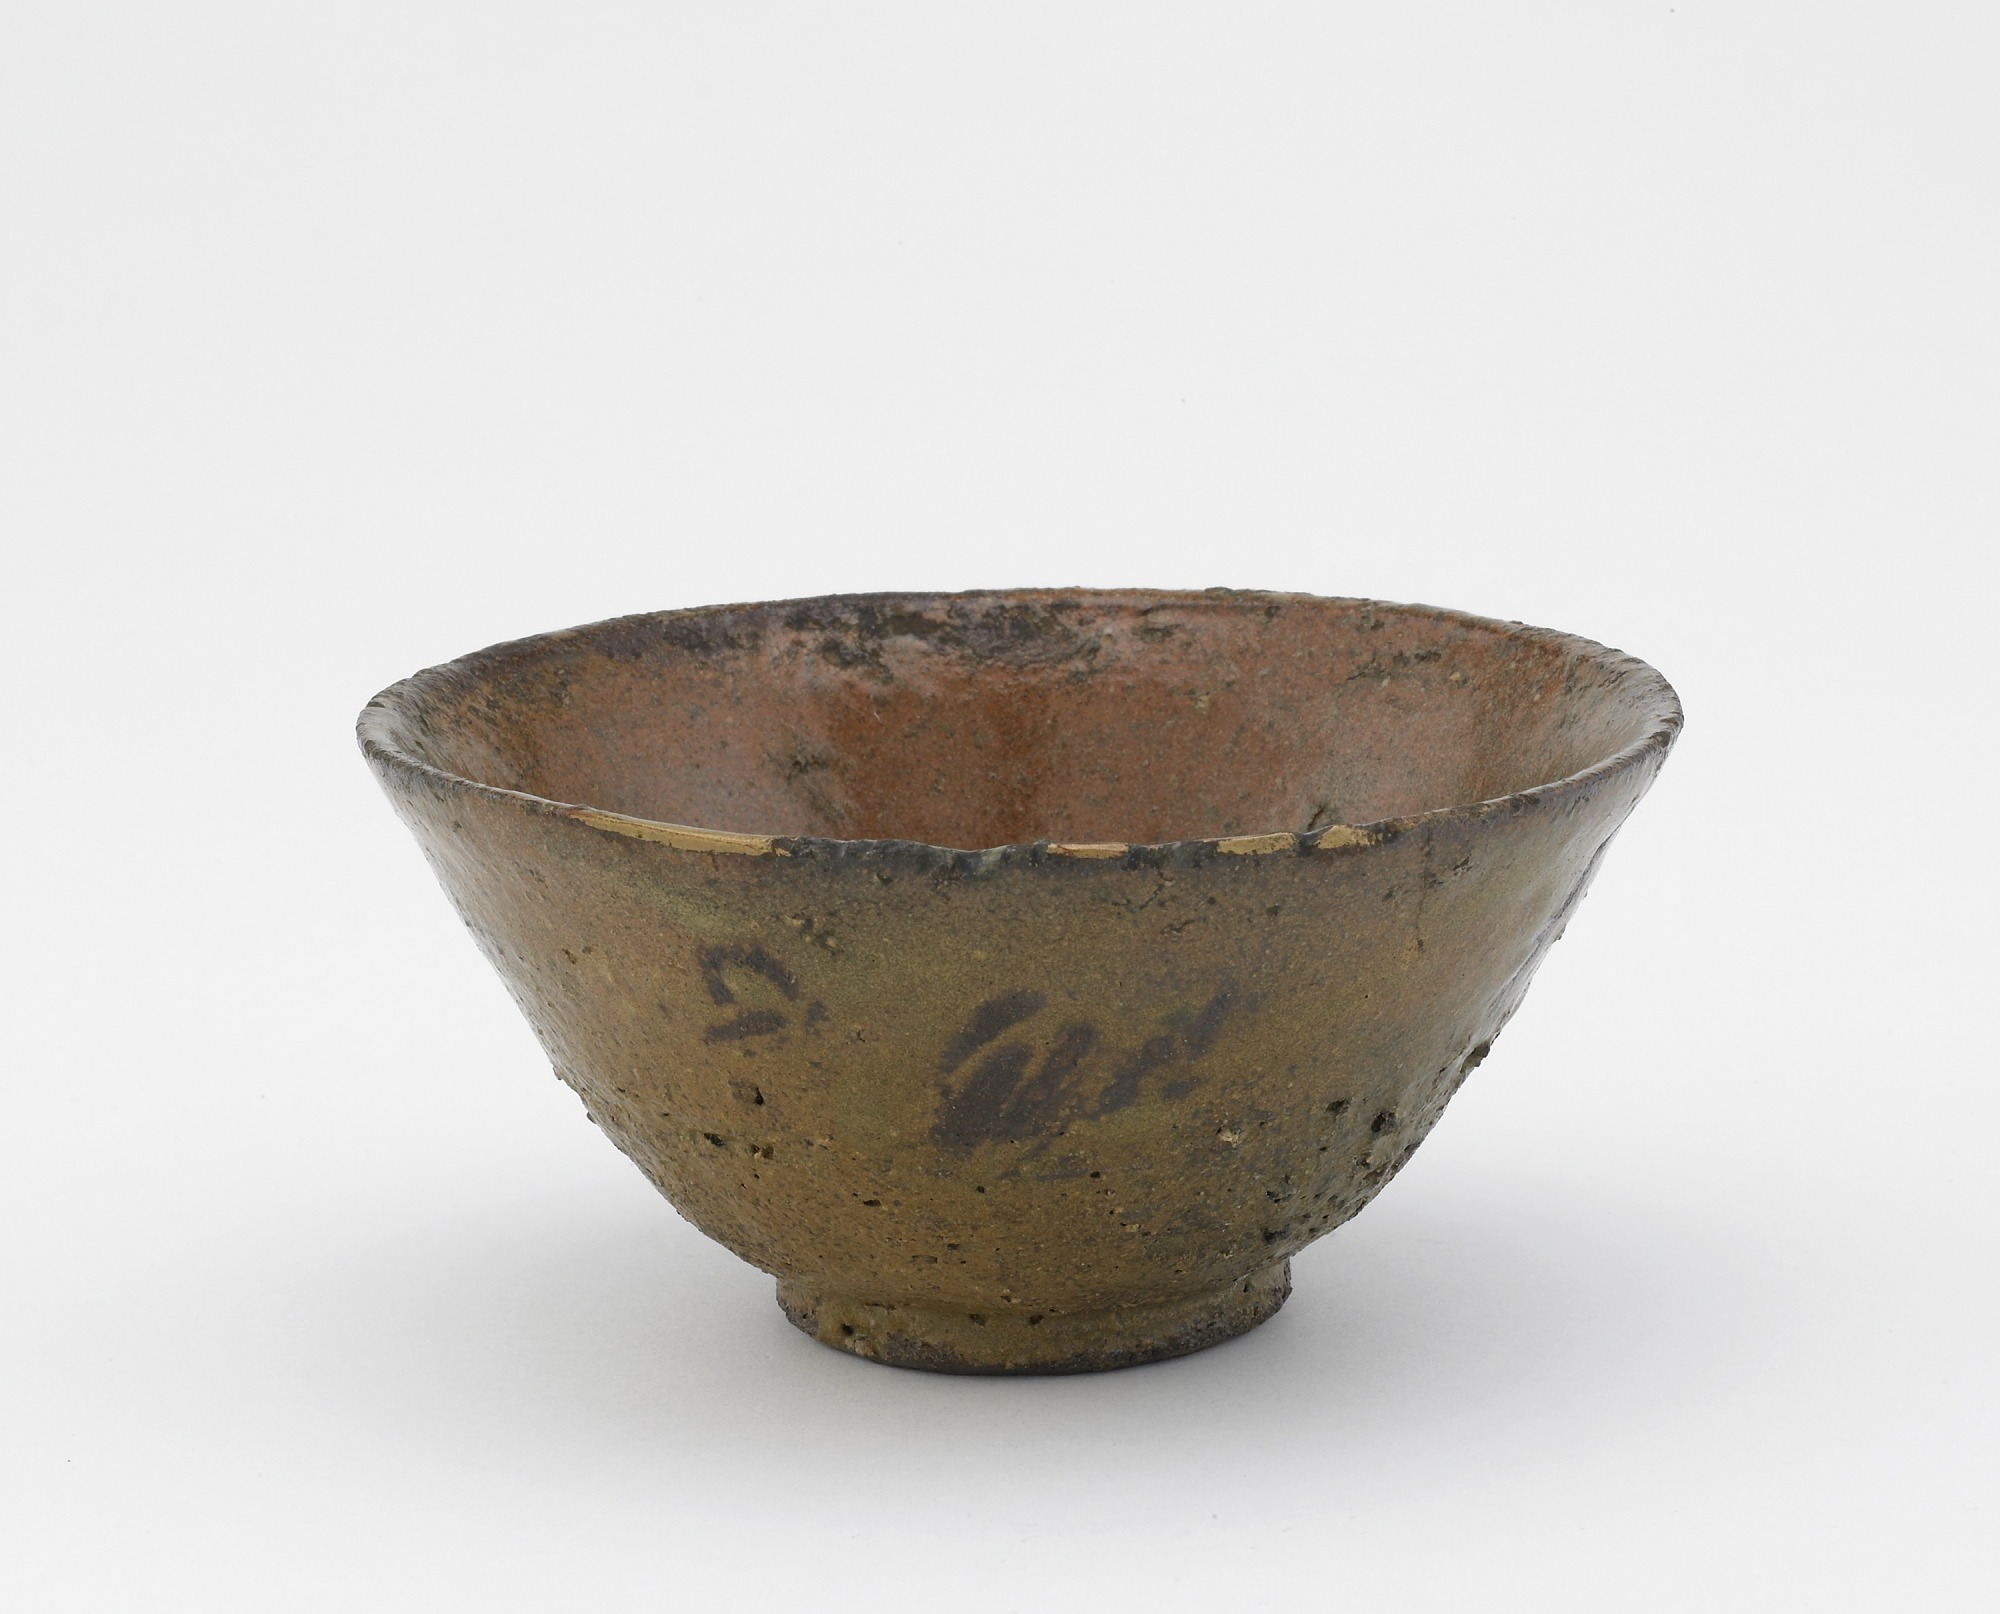 3/4 profile: Tea bowl, Ki-Irabo type